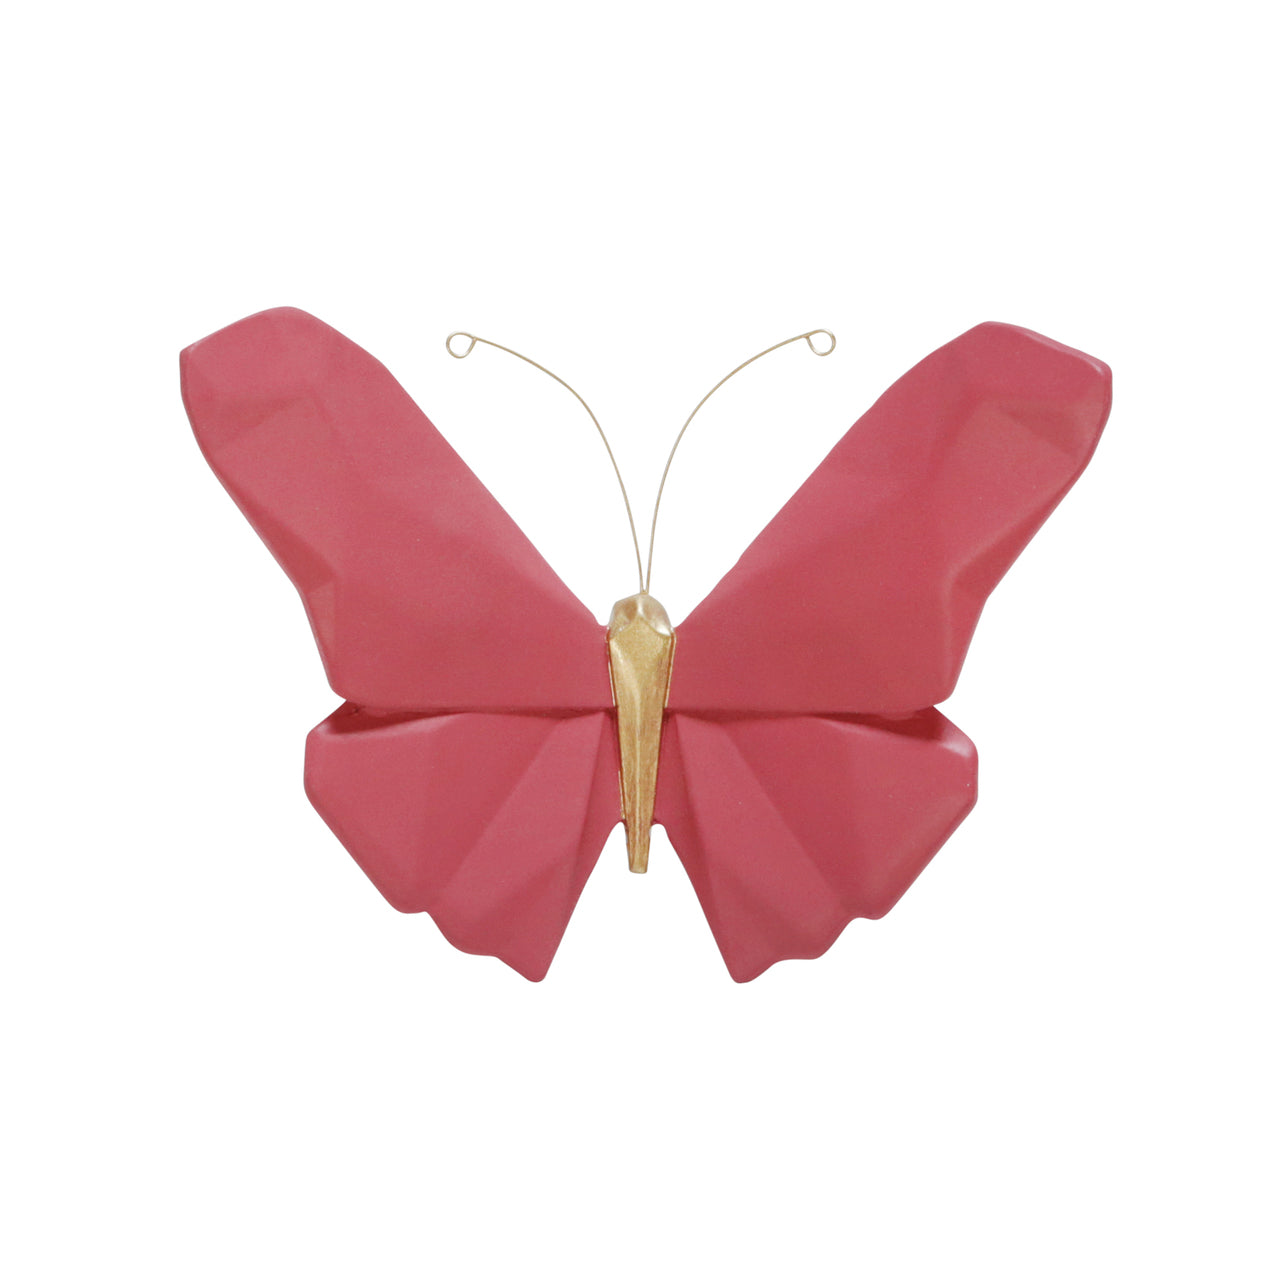 "RESIN 6"" W ORIGAMI BUTTERFLY WALL DECOR, PINK - Casa Muebles"